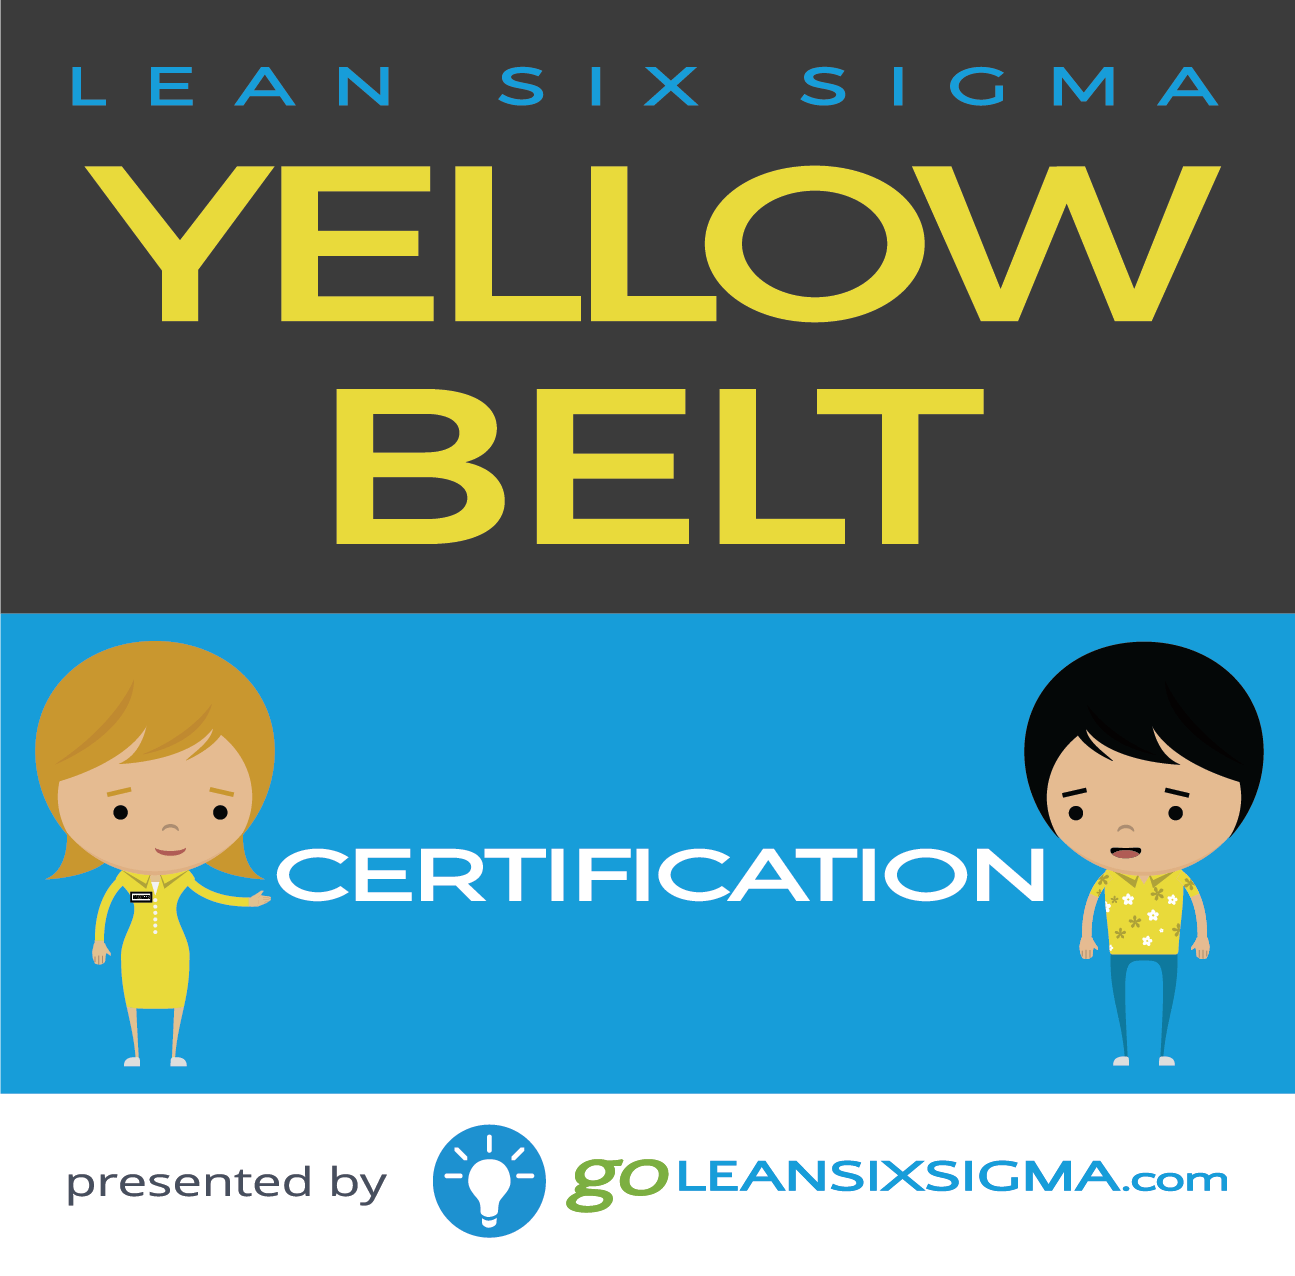 Lean and six sigma courses goleansixsigma yellow belt training certification xflitez Images